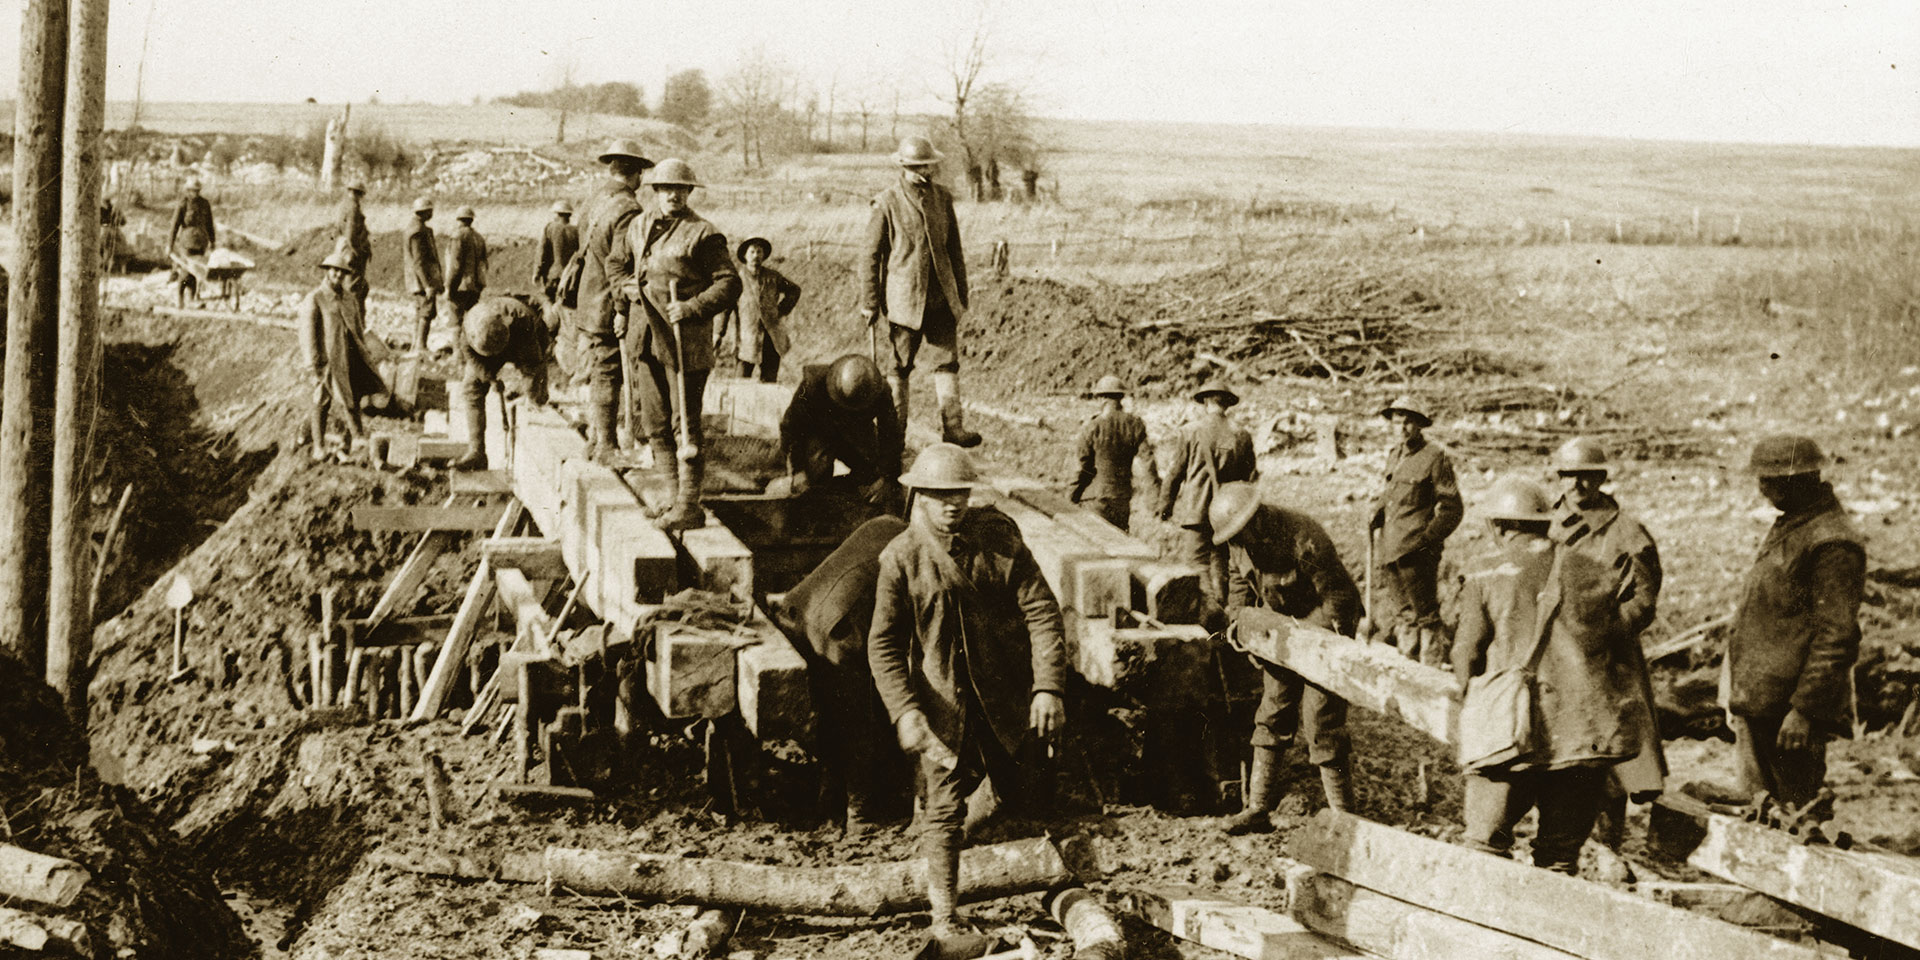 Soldiers bridging a stream in the First World War